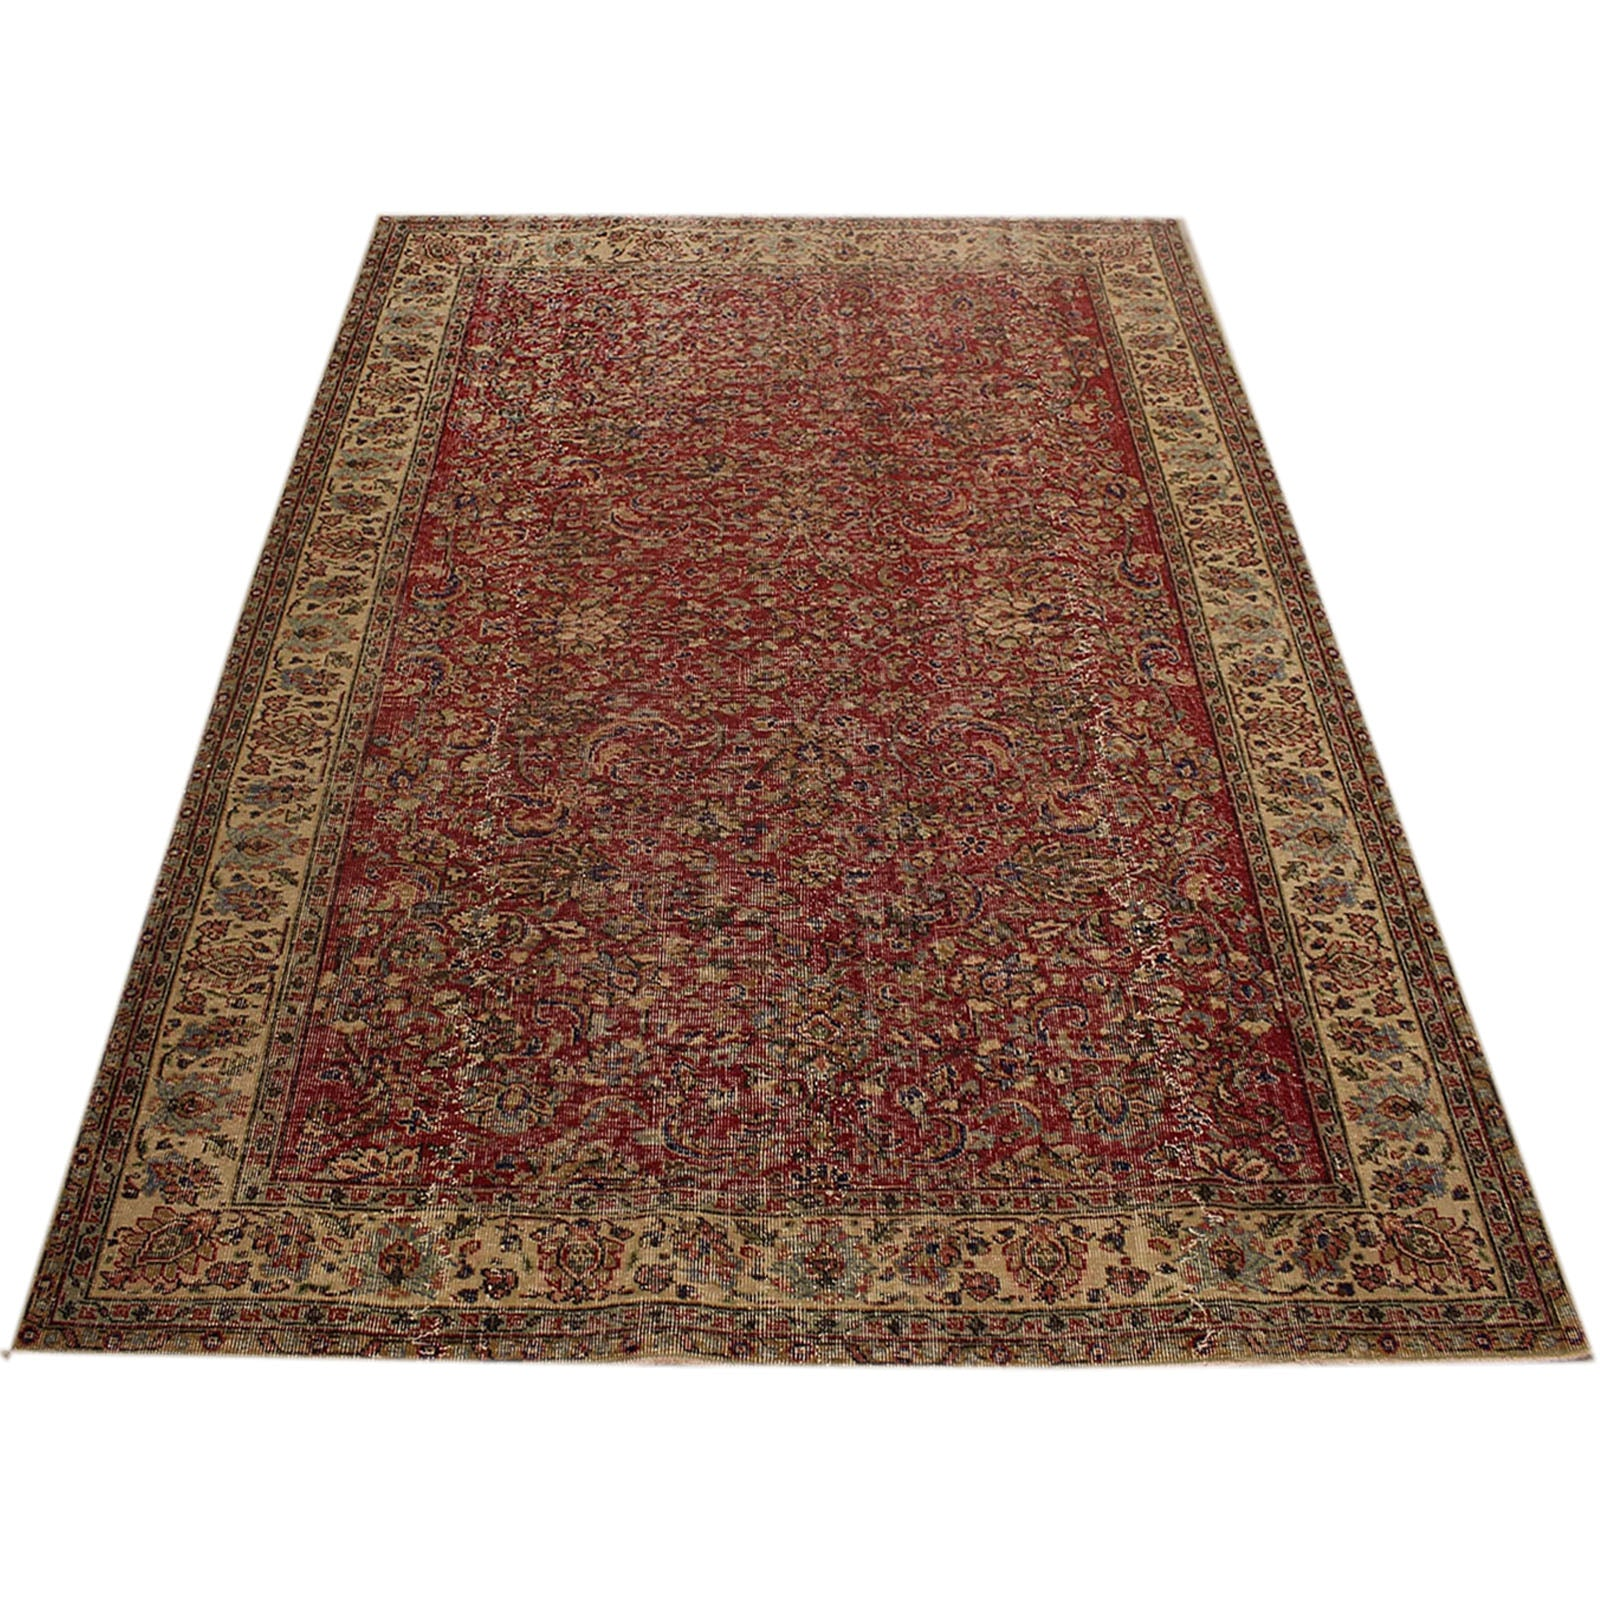 Hali 205X267 CM Bursa Handmade over dyed rug 2346